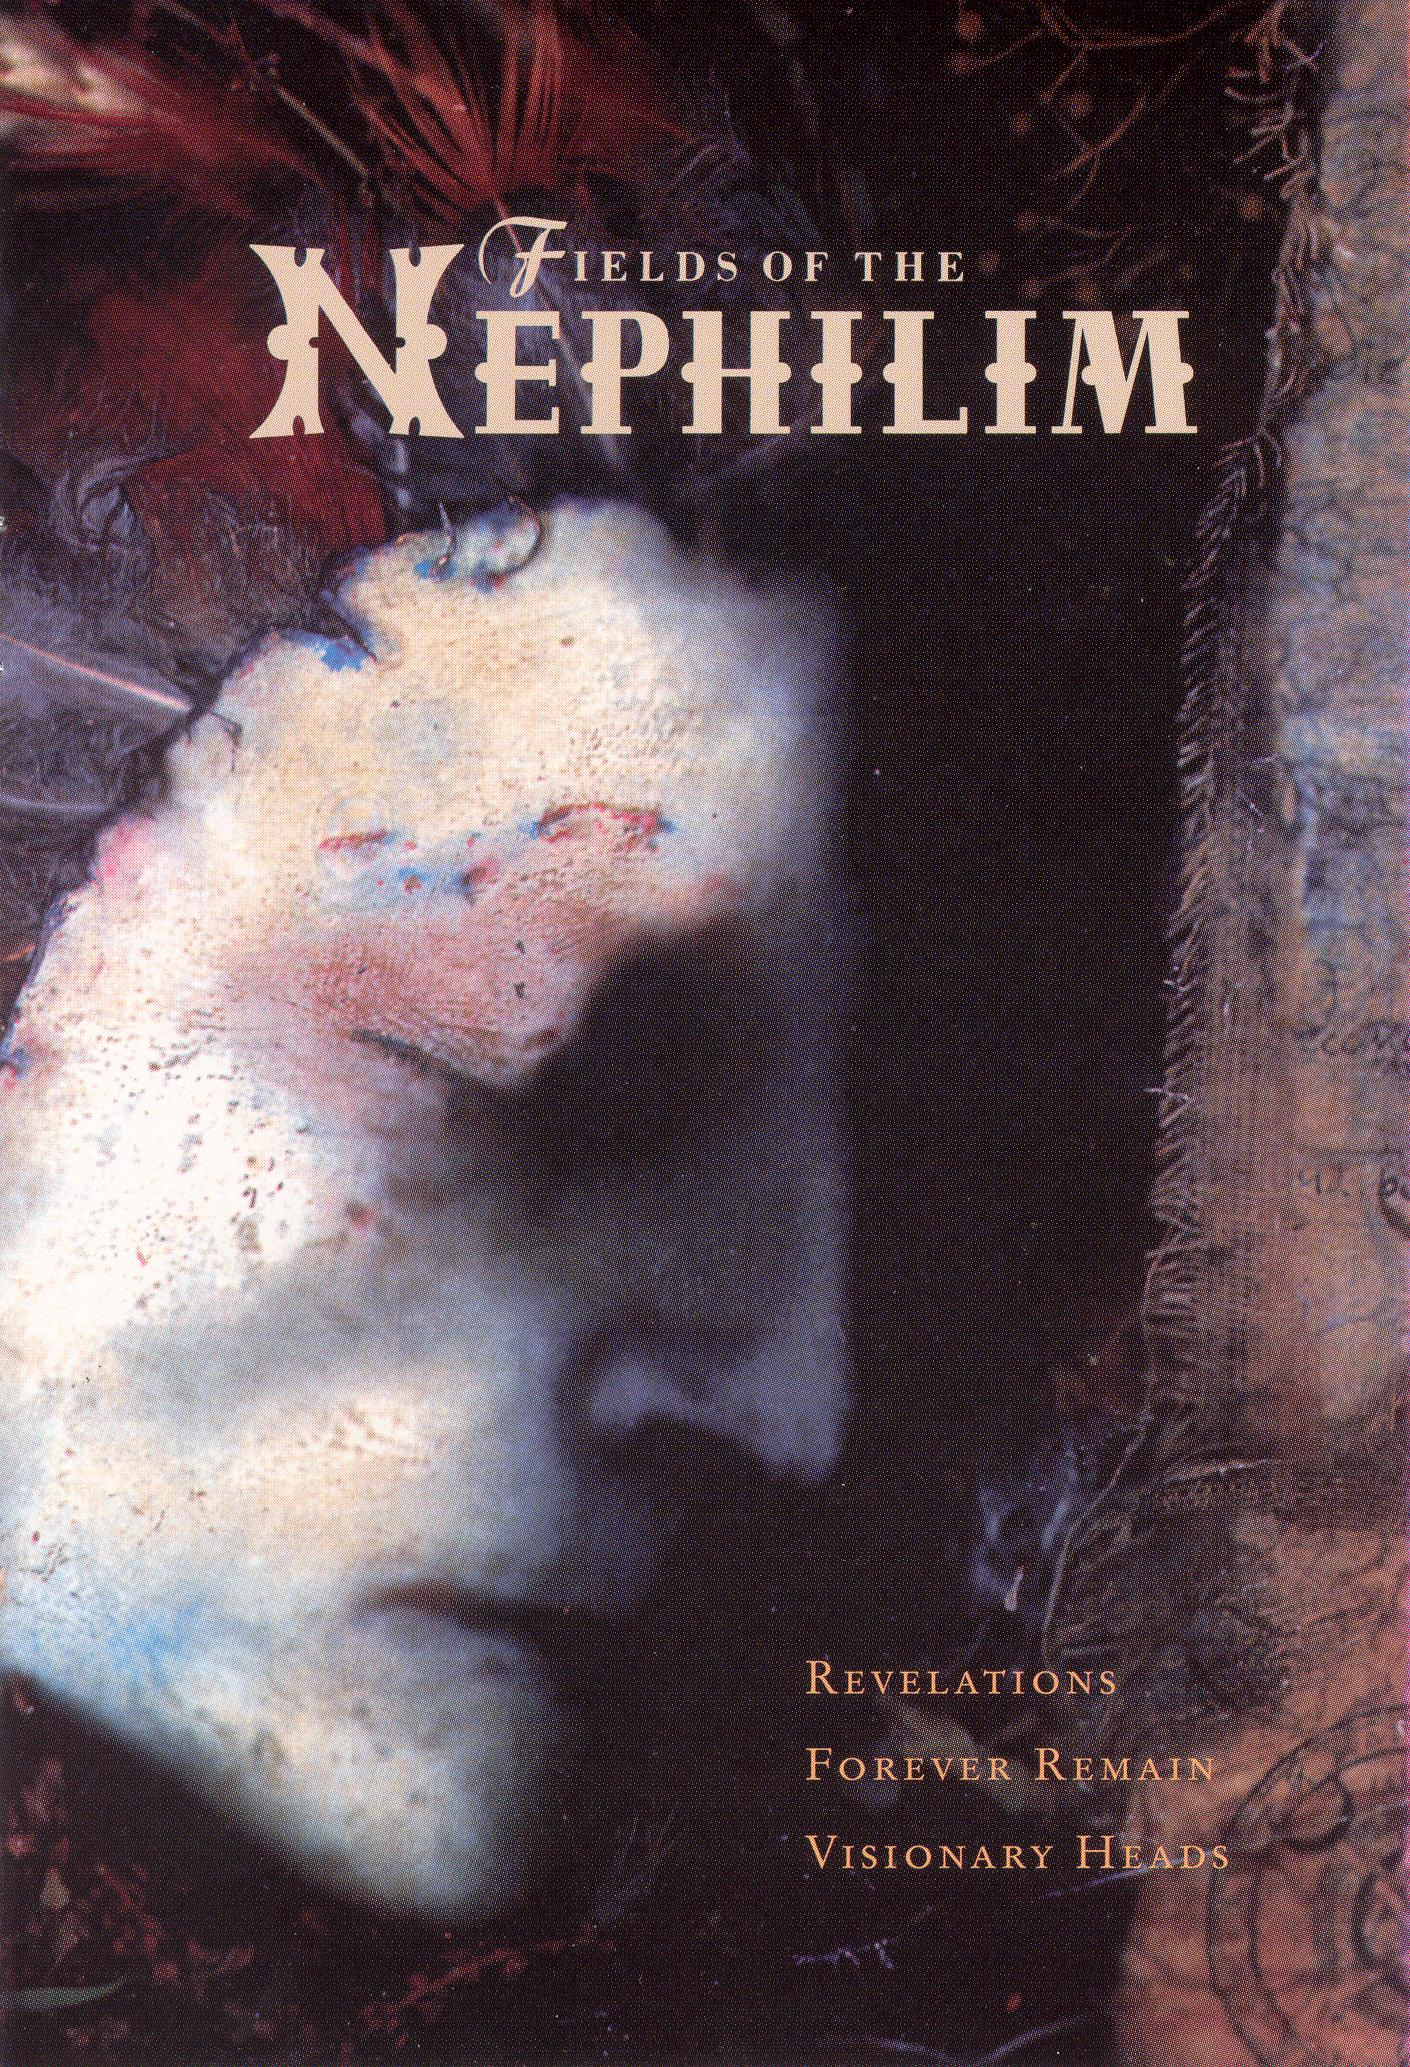 Fields of the Nephilim: Revelations/Forever Remain/Visionary Heads